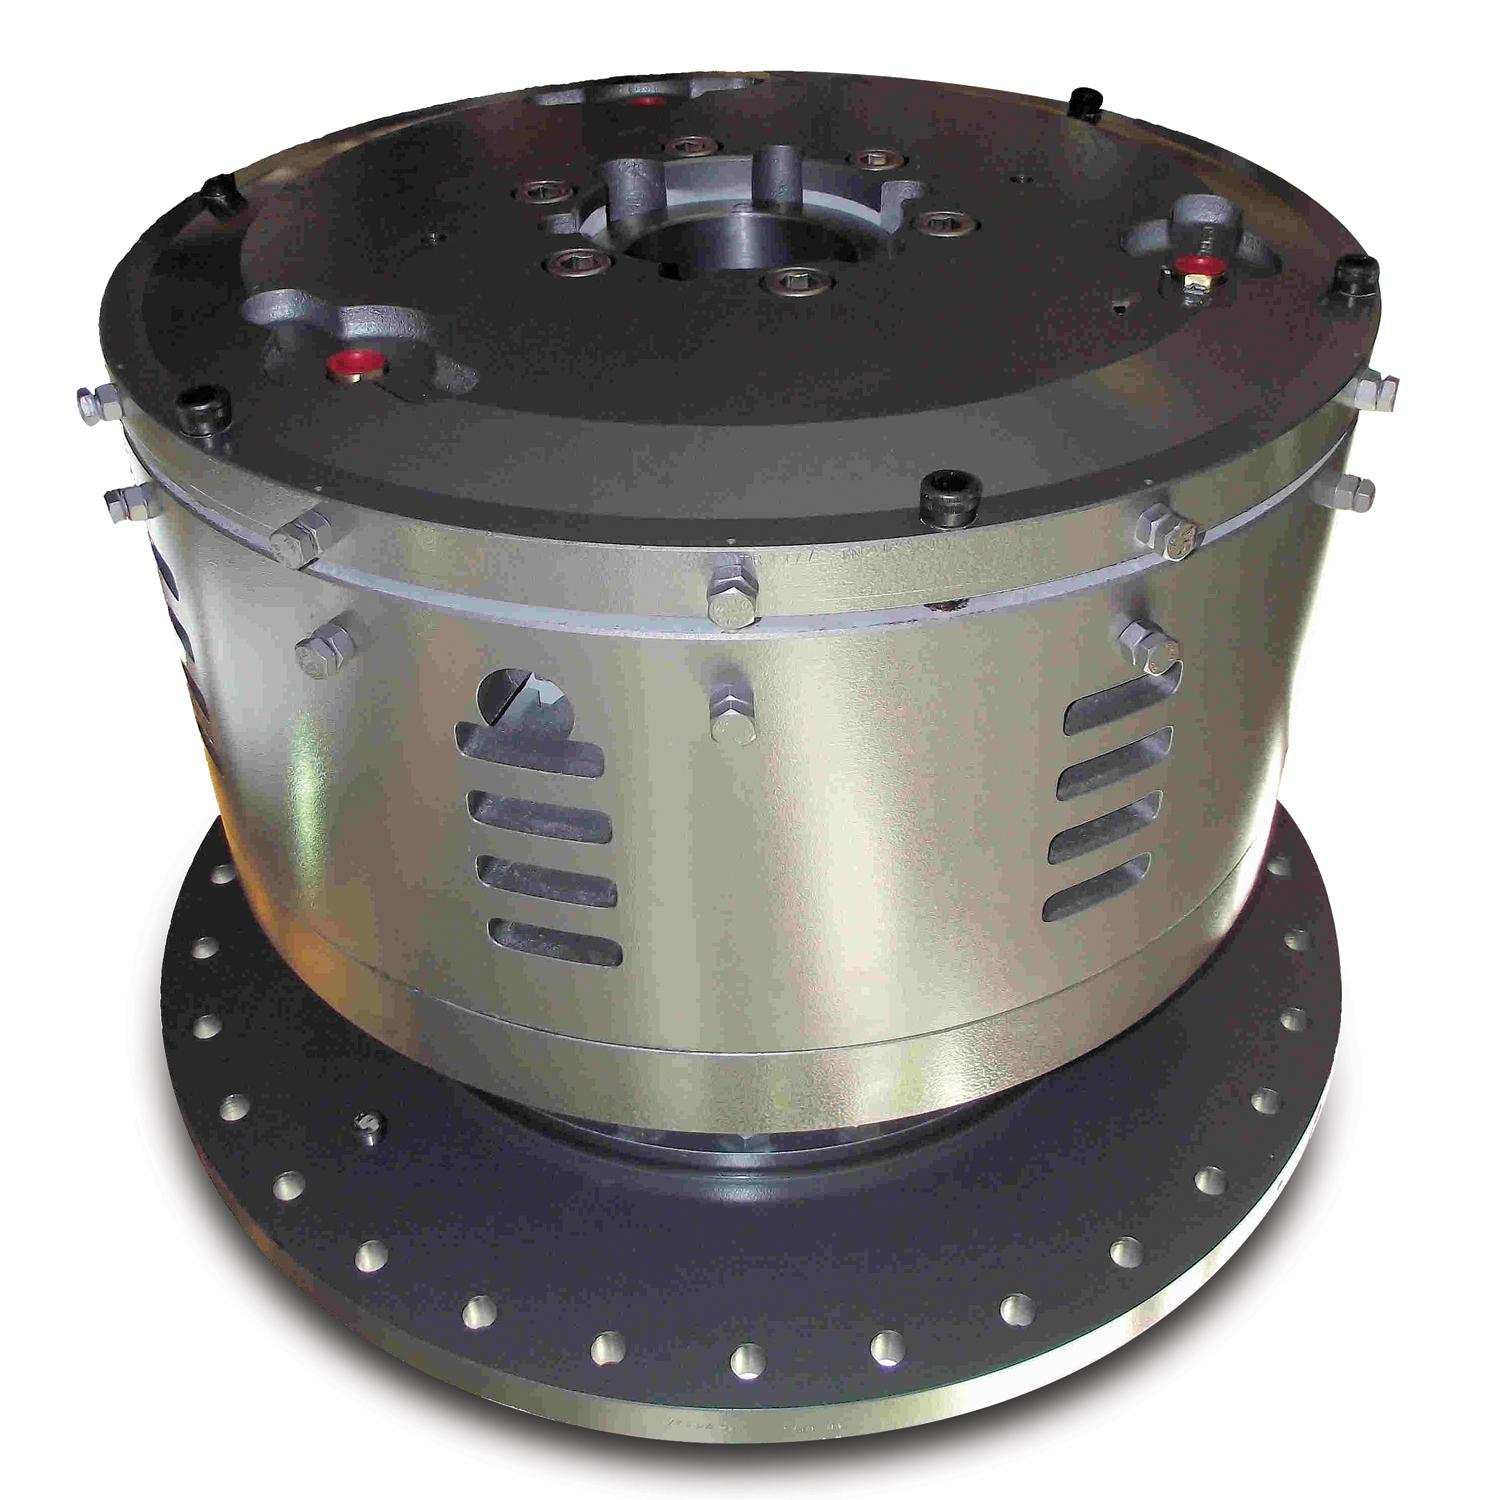 Wichita multi-plate clutch designs may be configured to act as a torque limiting device, protecting the drive train from torque spikes induced by extreme weather conditions